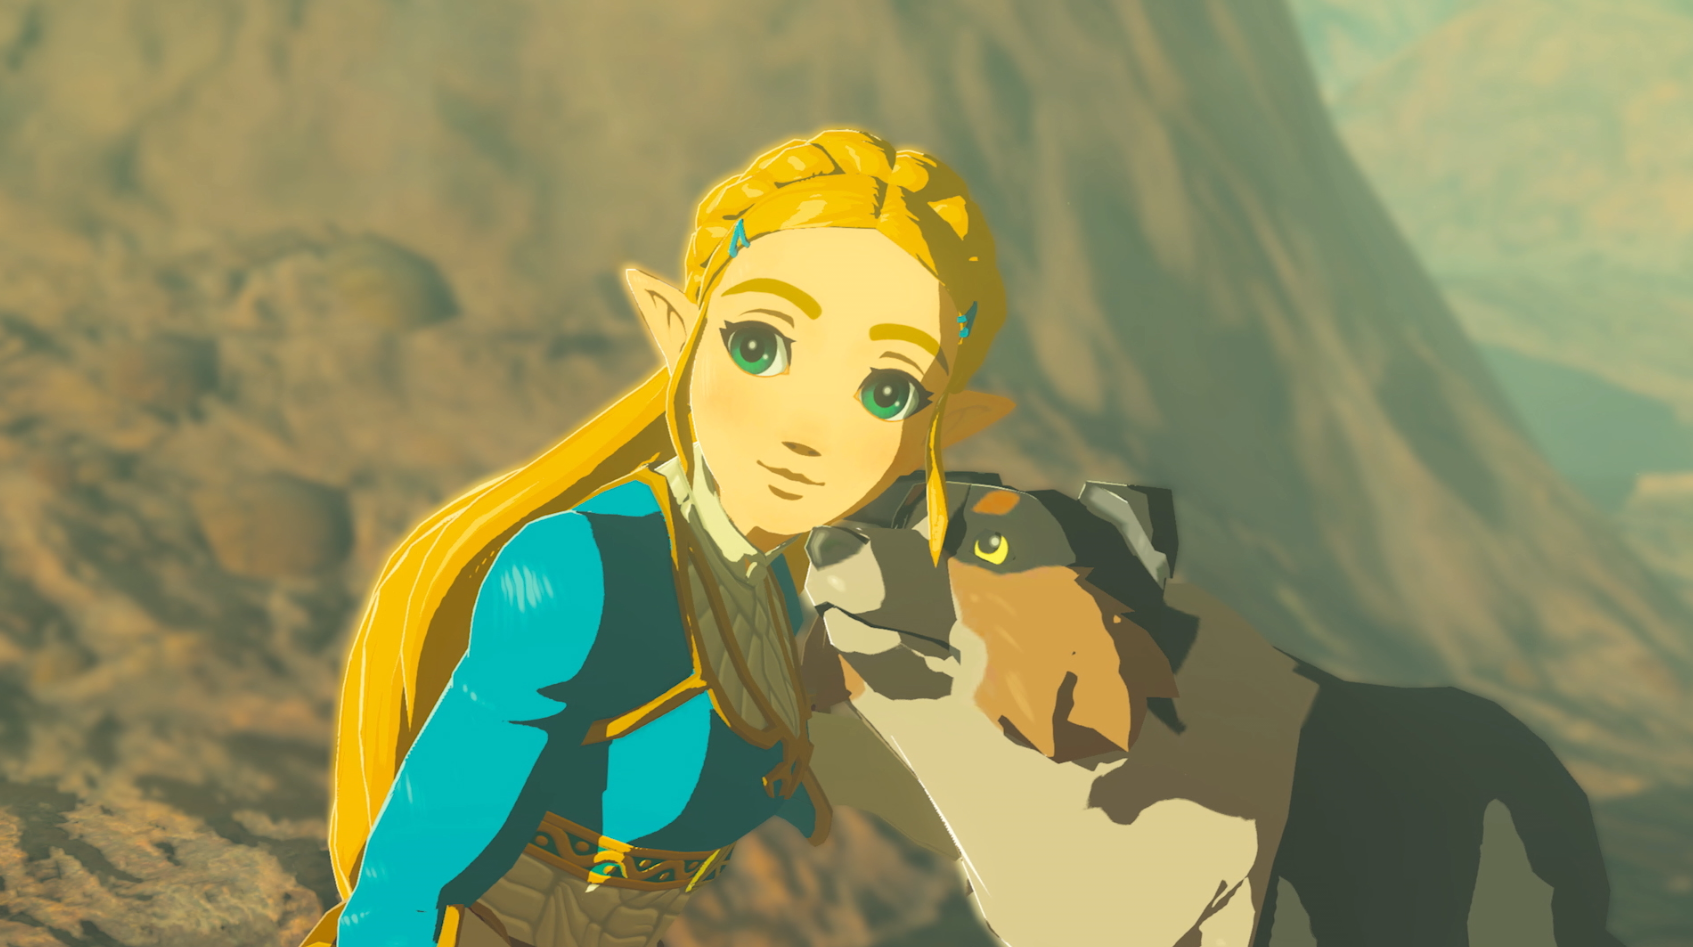 Zelda with a dog in Breath of the Wild's second DLC